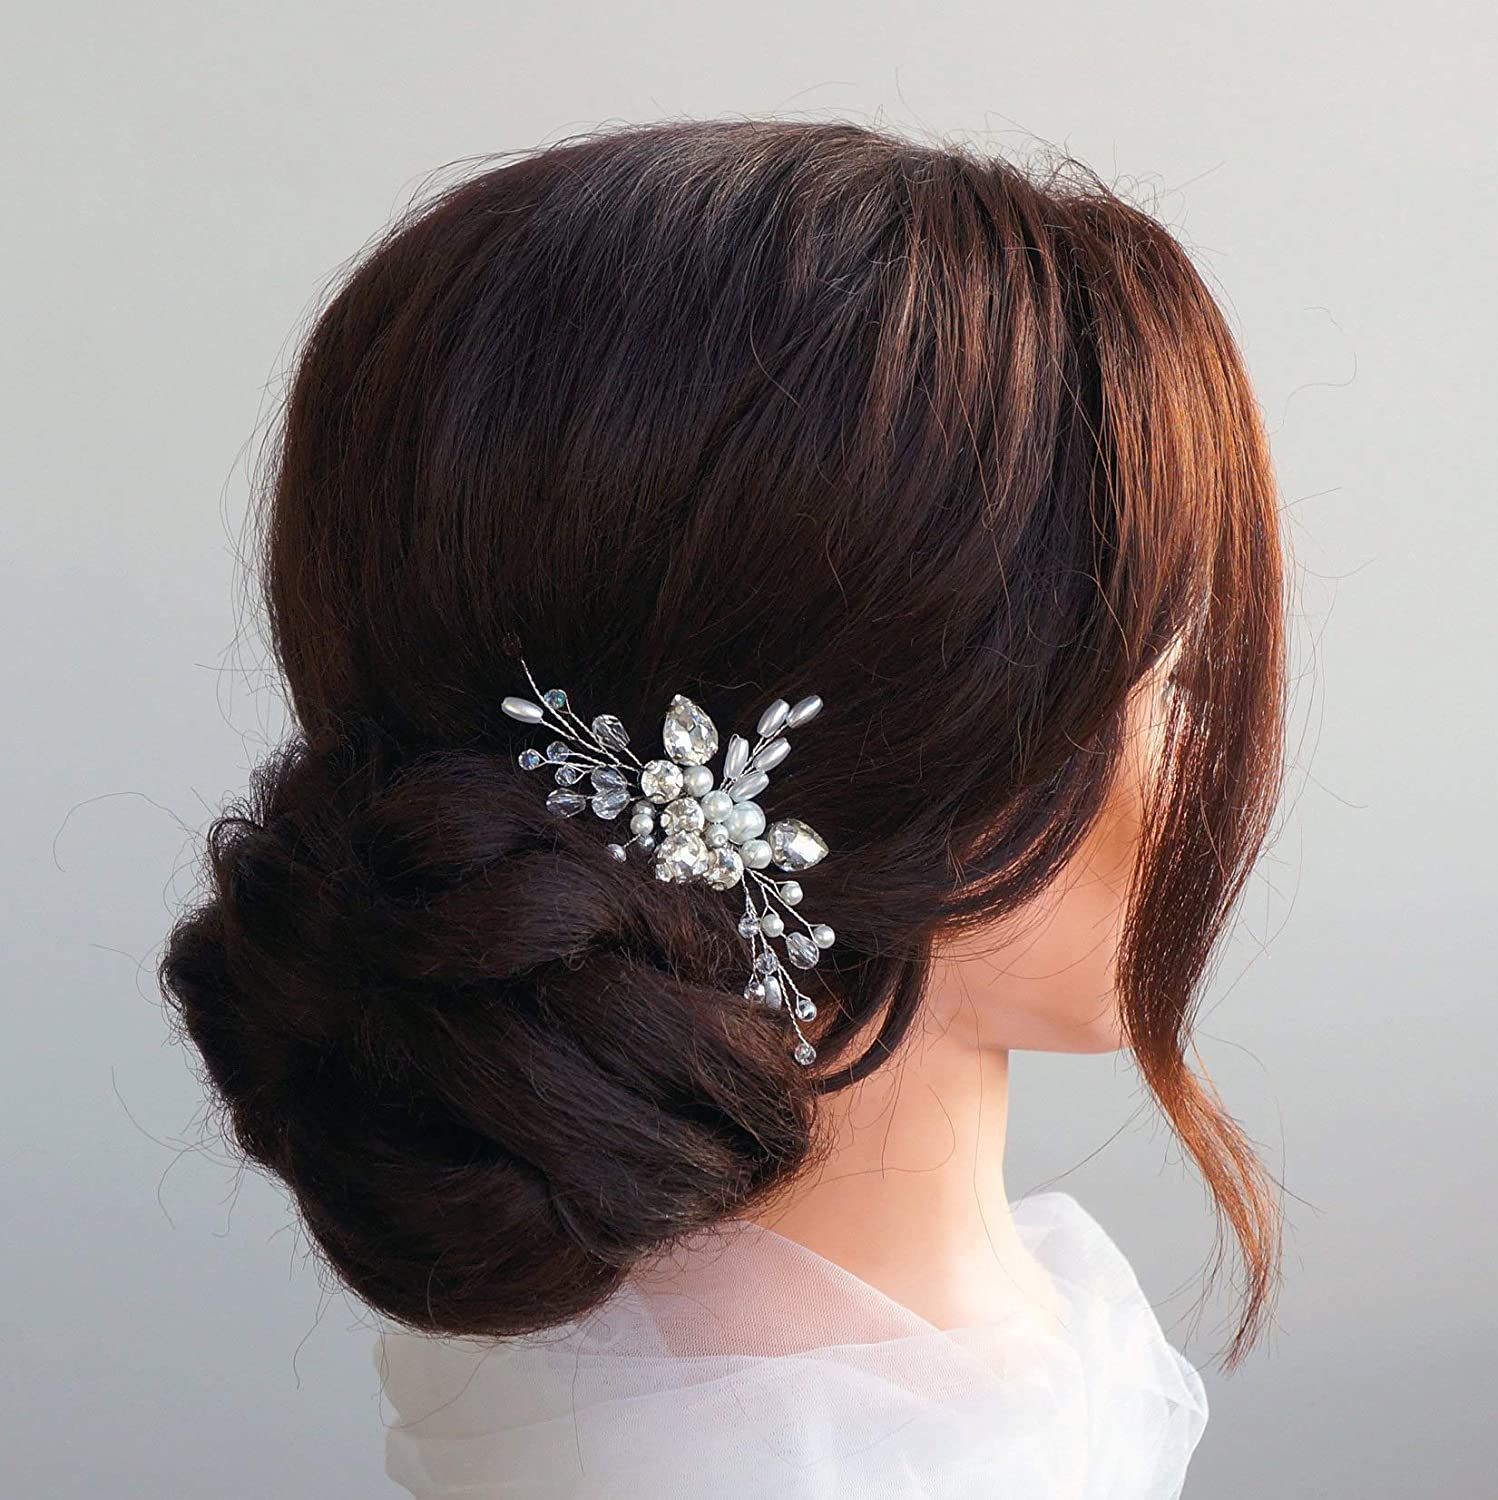 Kercisbeauty Wedding Bridal Hair Comb Hair Accessories For Bride Small Hair Comb For Bun Girls Prom Hair Piece Silver Amazon Co Uk Beauty